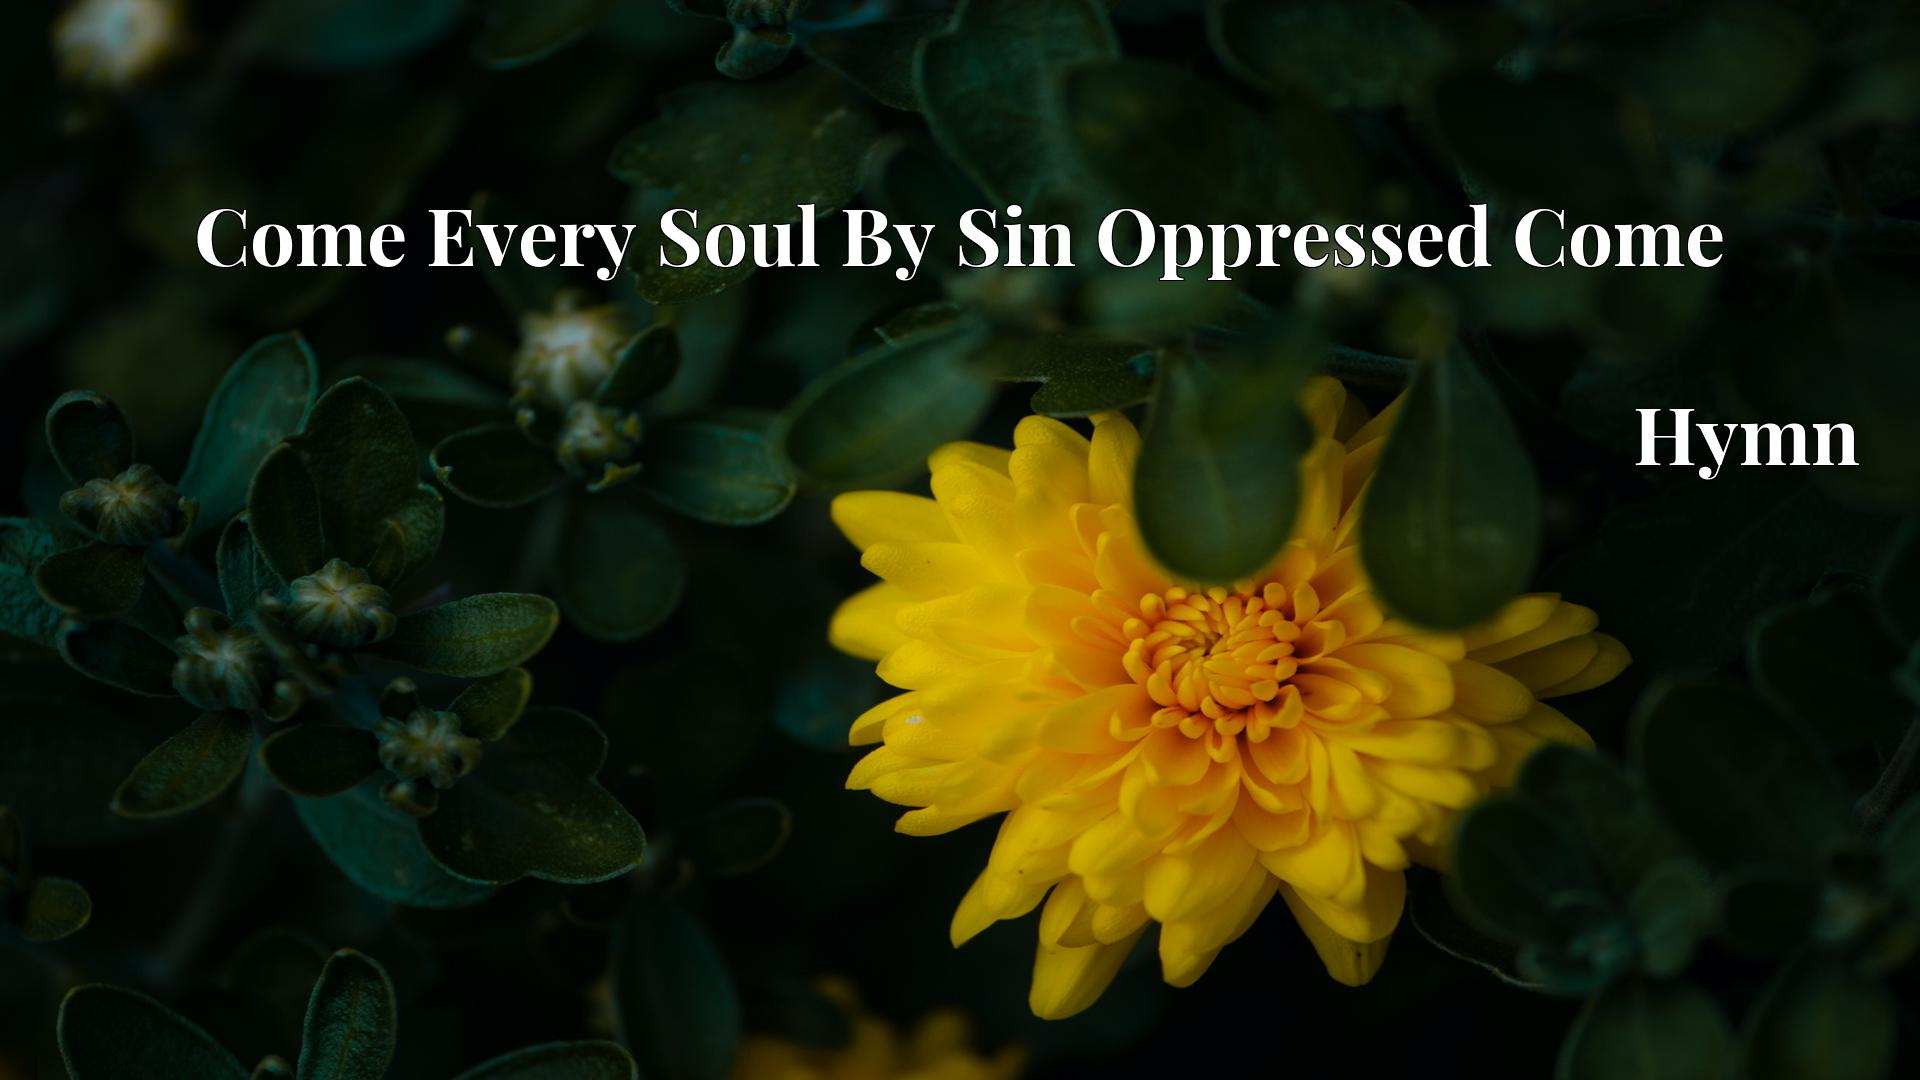 Come Every Soul By Sin Oppressed Come - Hymn